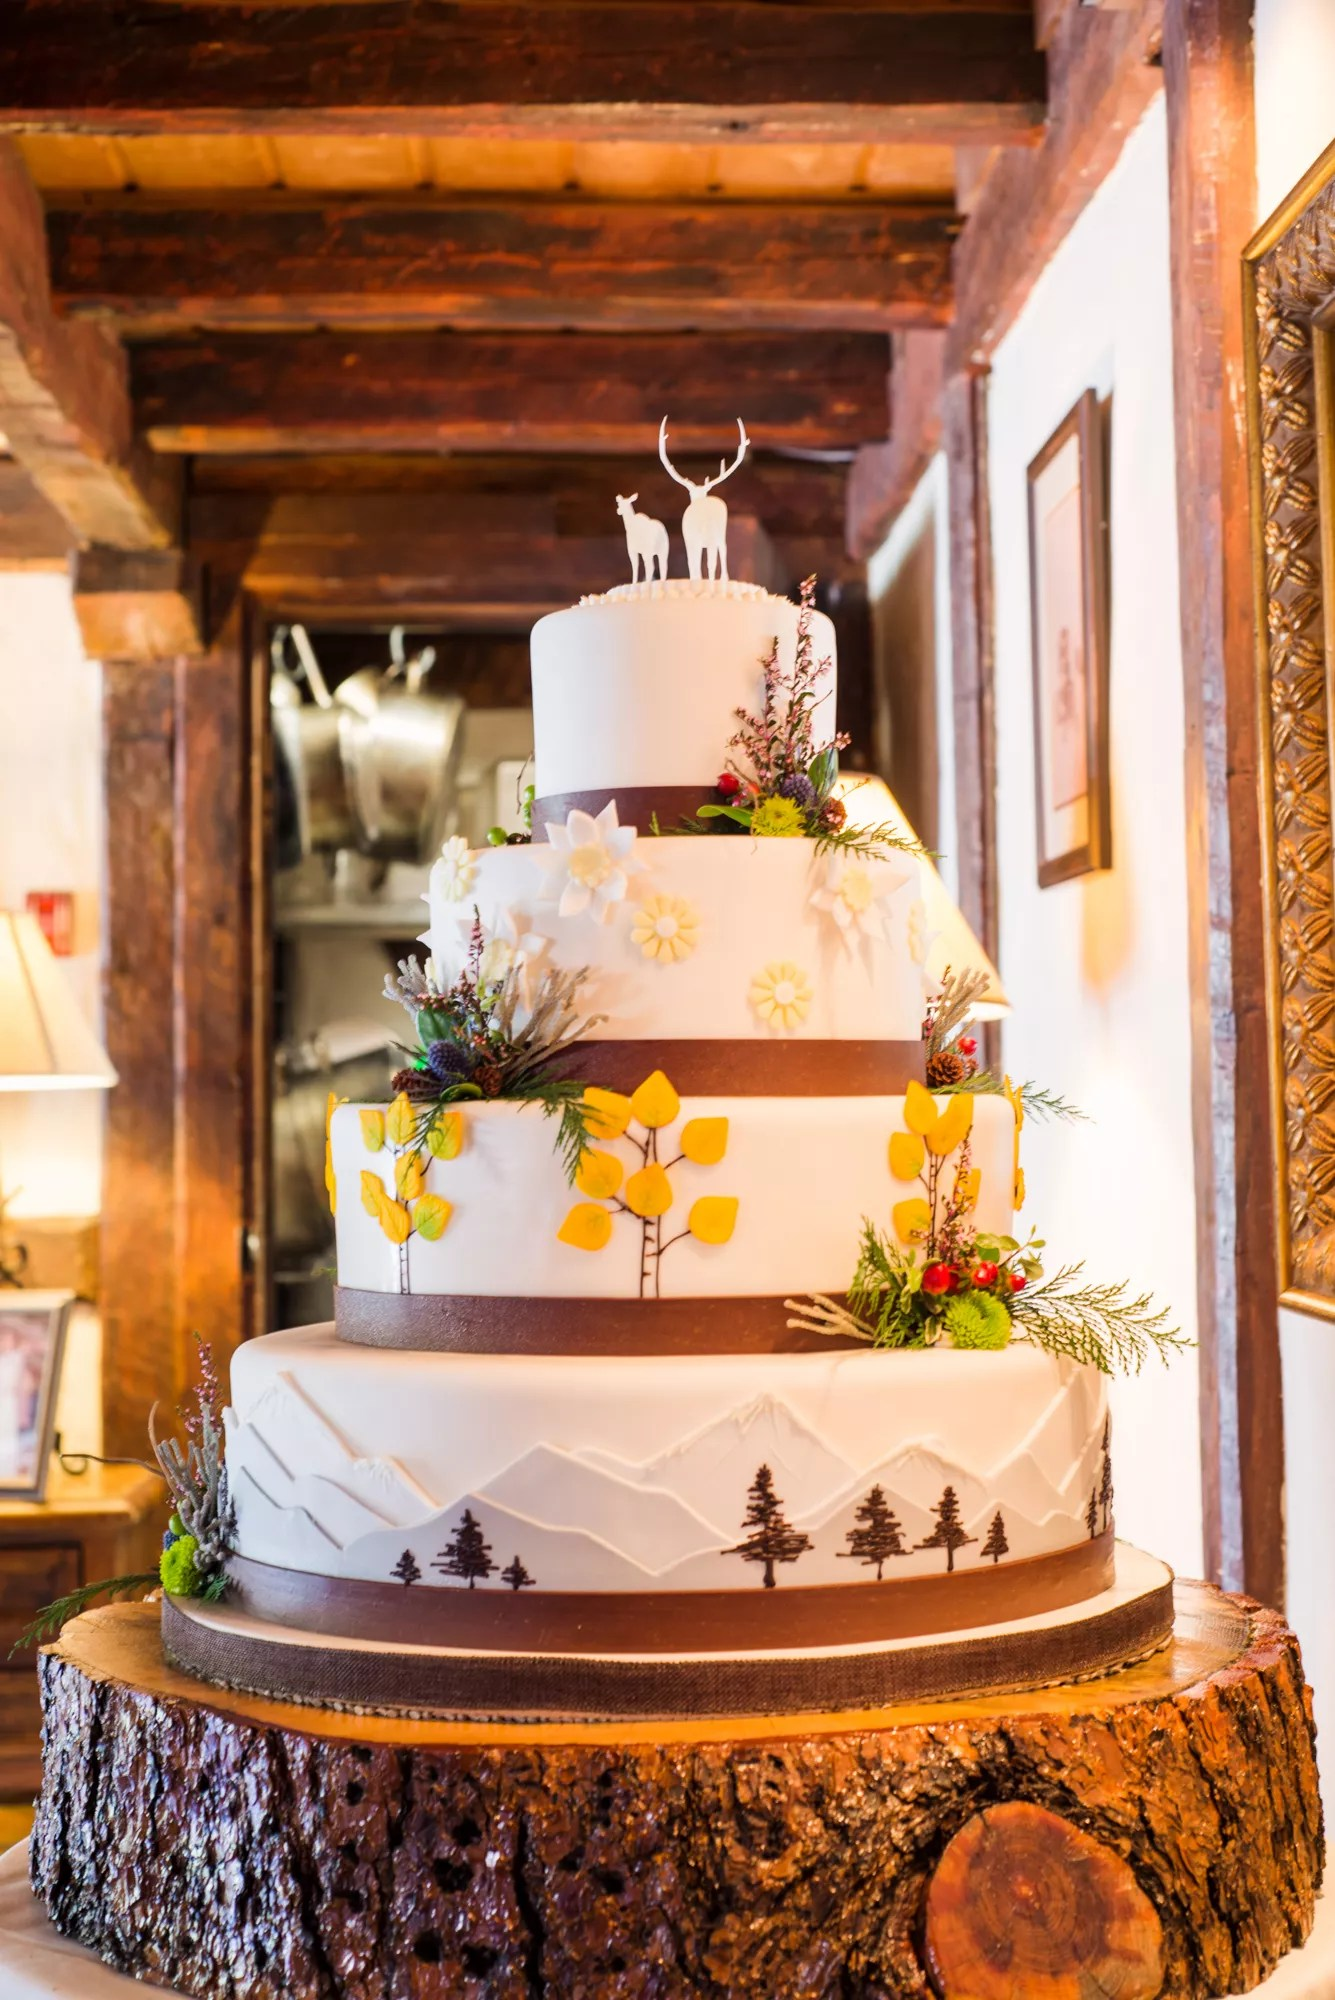 Four Tier Forest Themed Wedding Cake